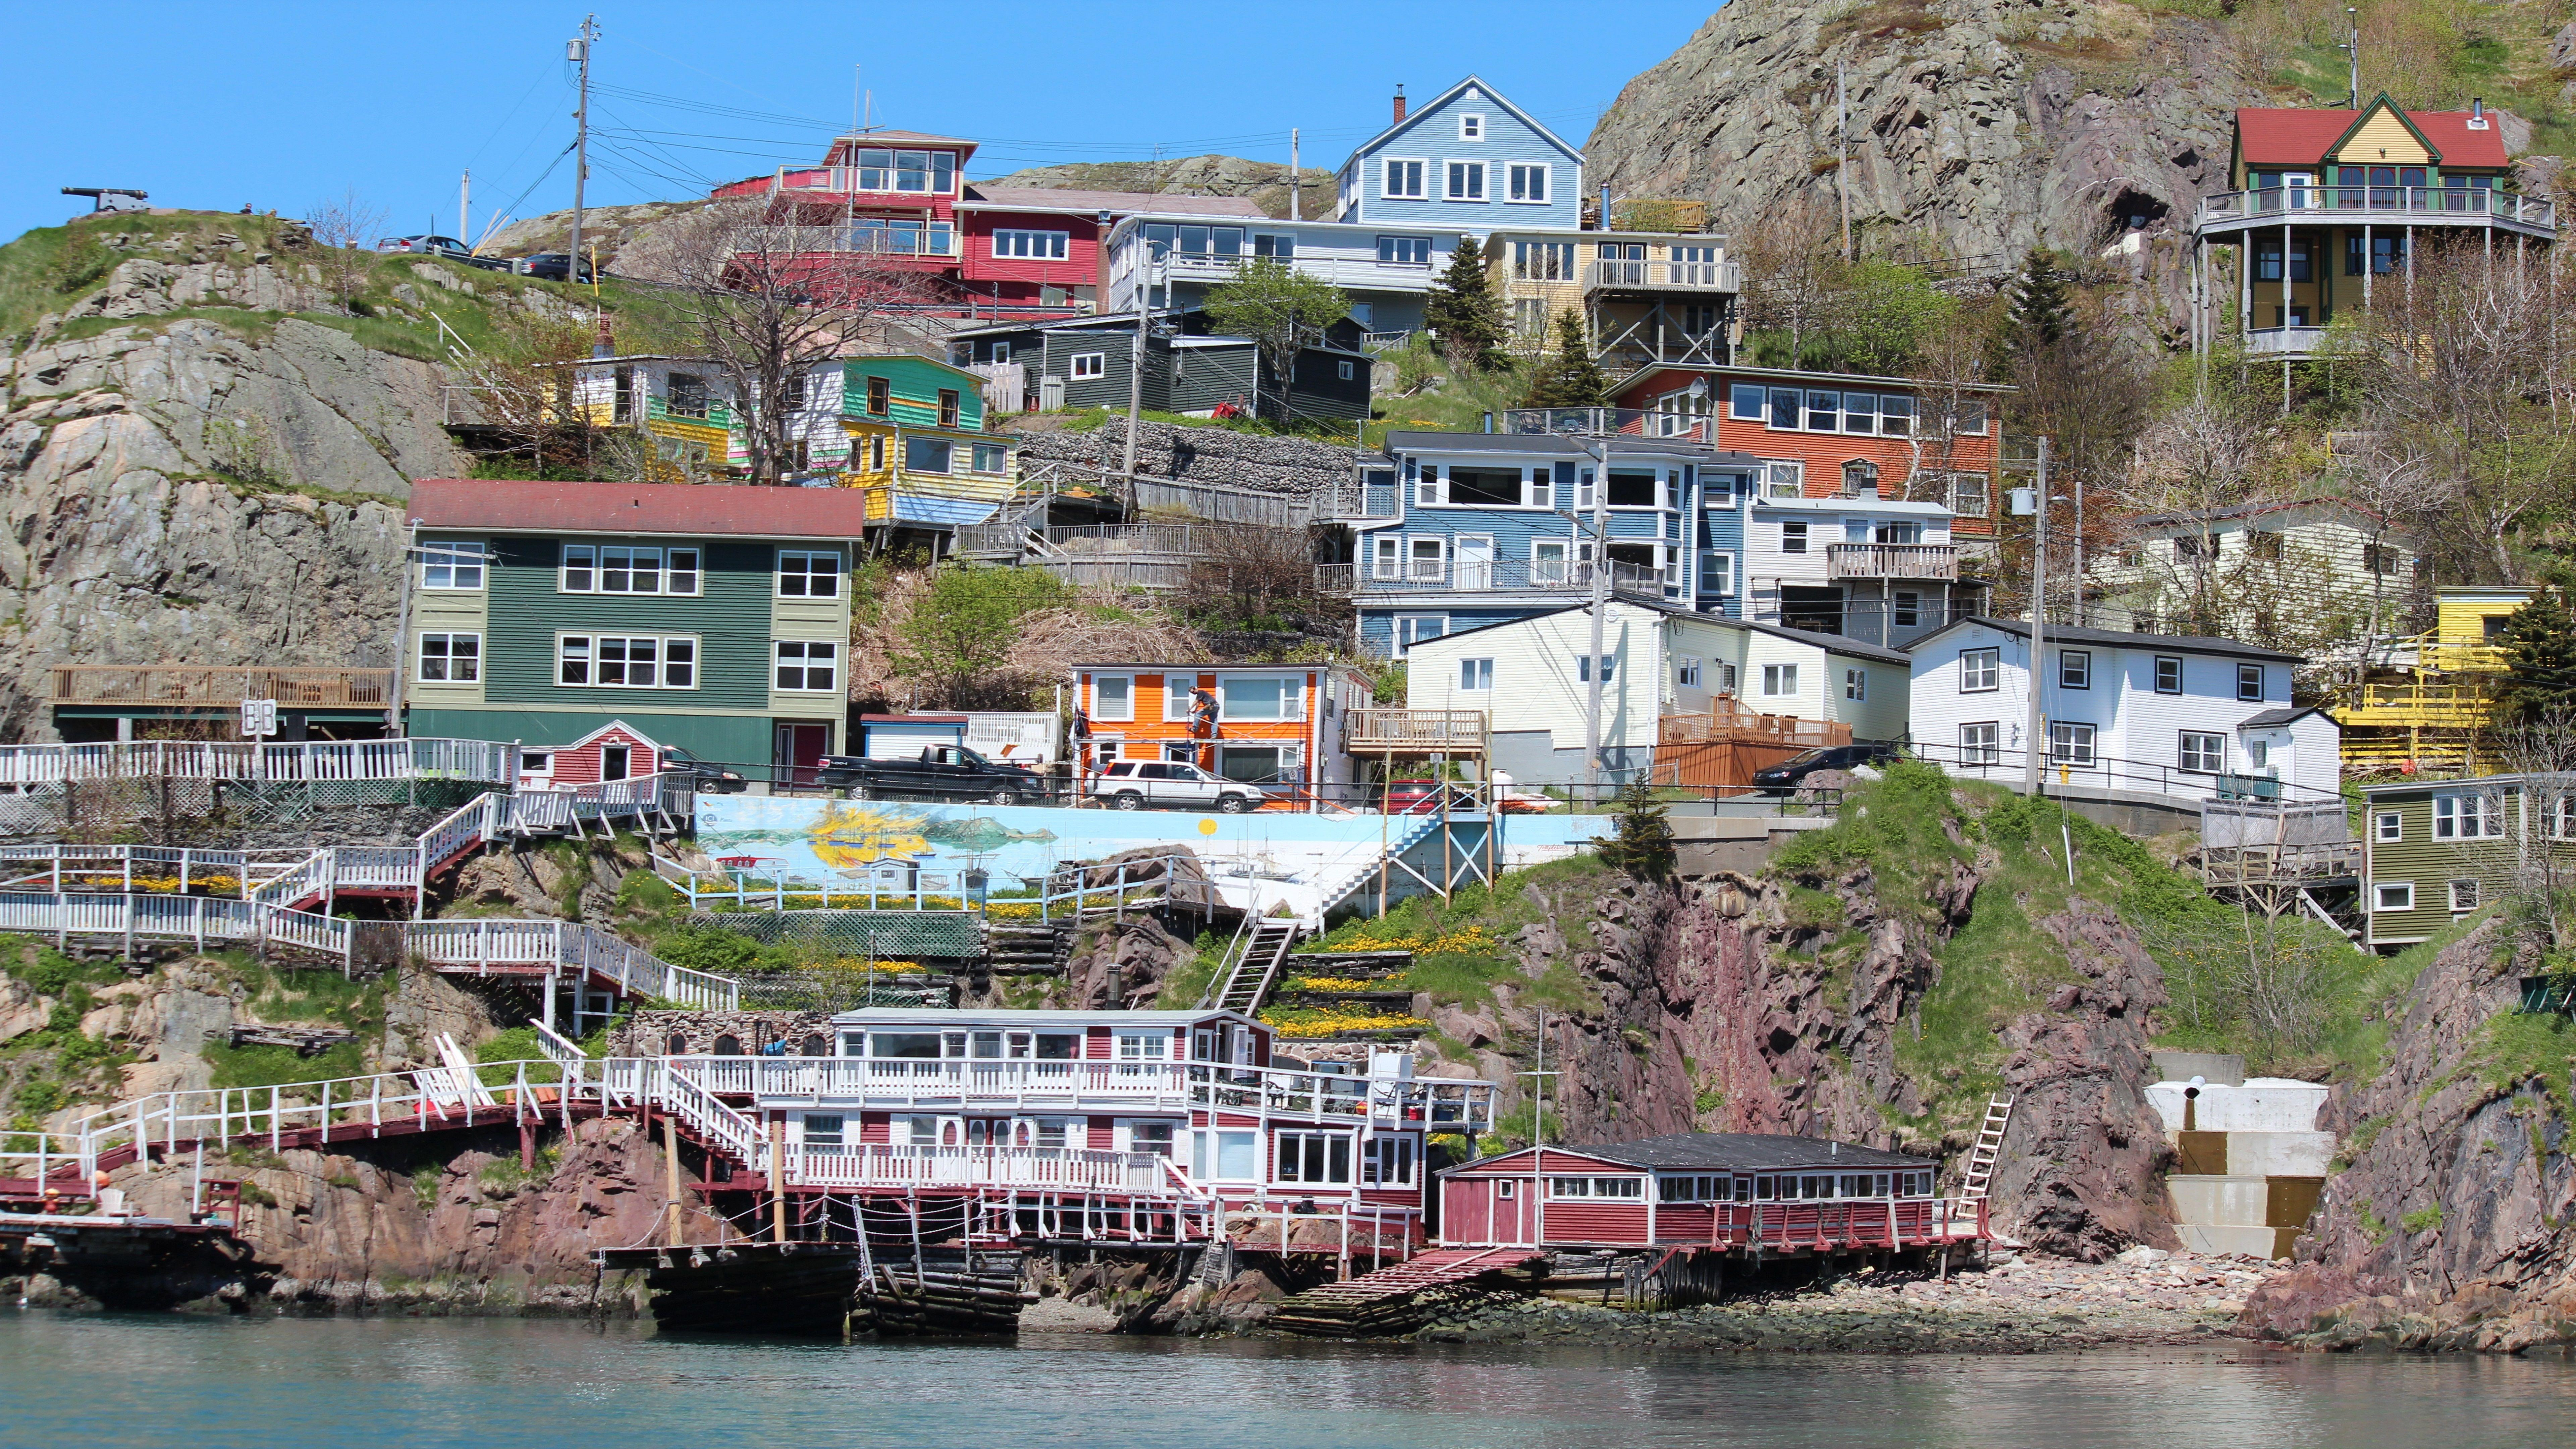 St. John's City Newfoundland 8K Wallpaper | Wallpapers 4K 5K 8K